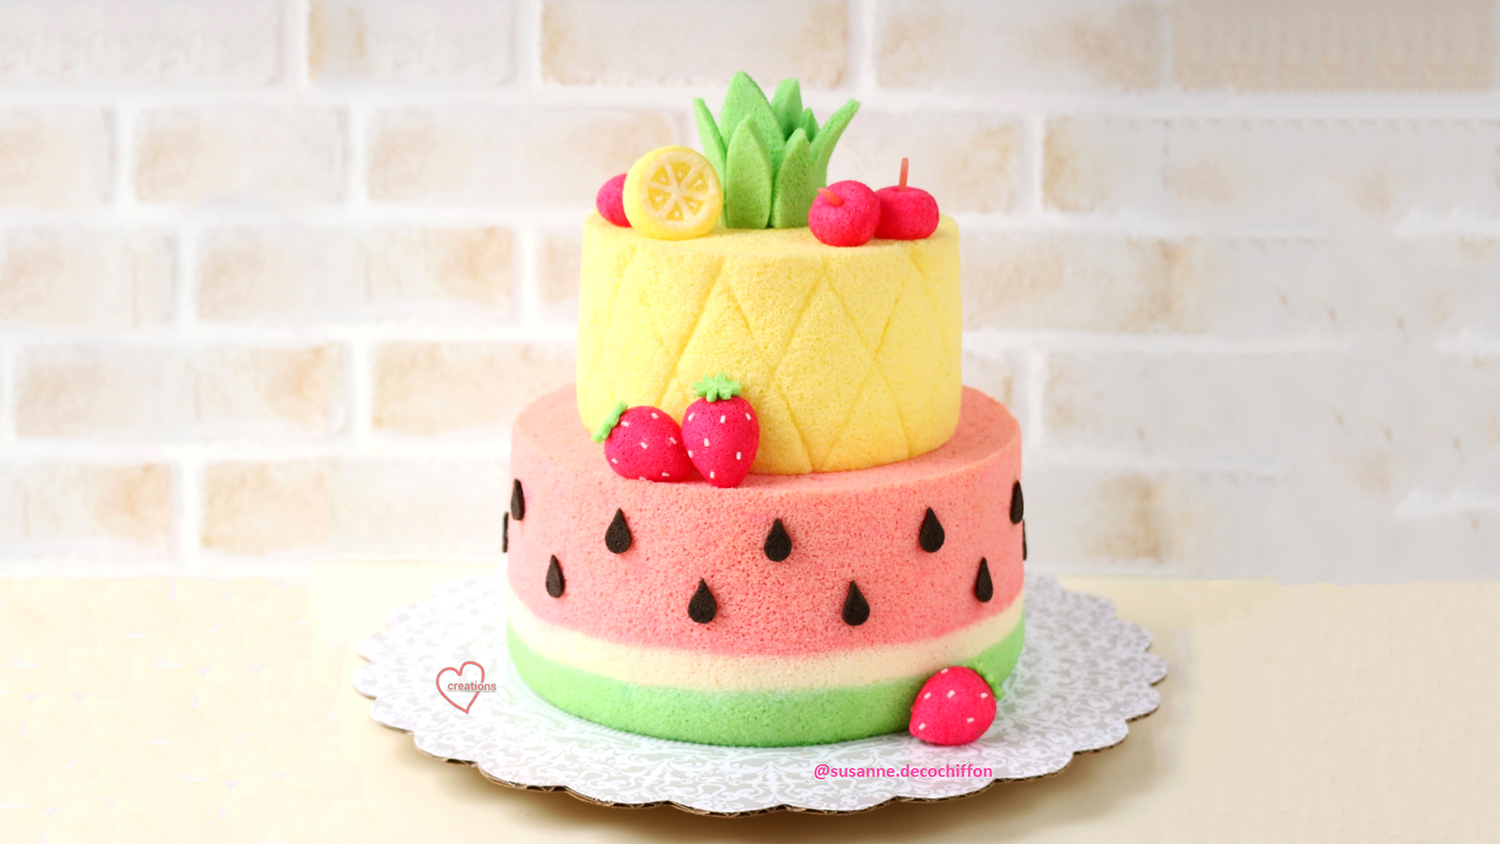 watermelon and pineapple chiffon cake